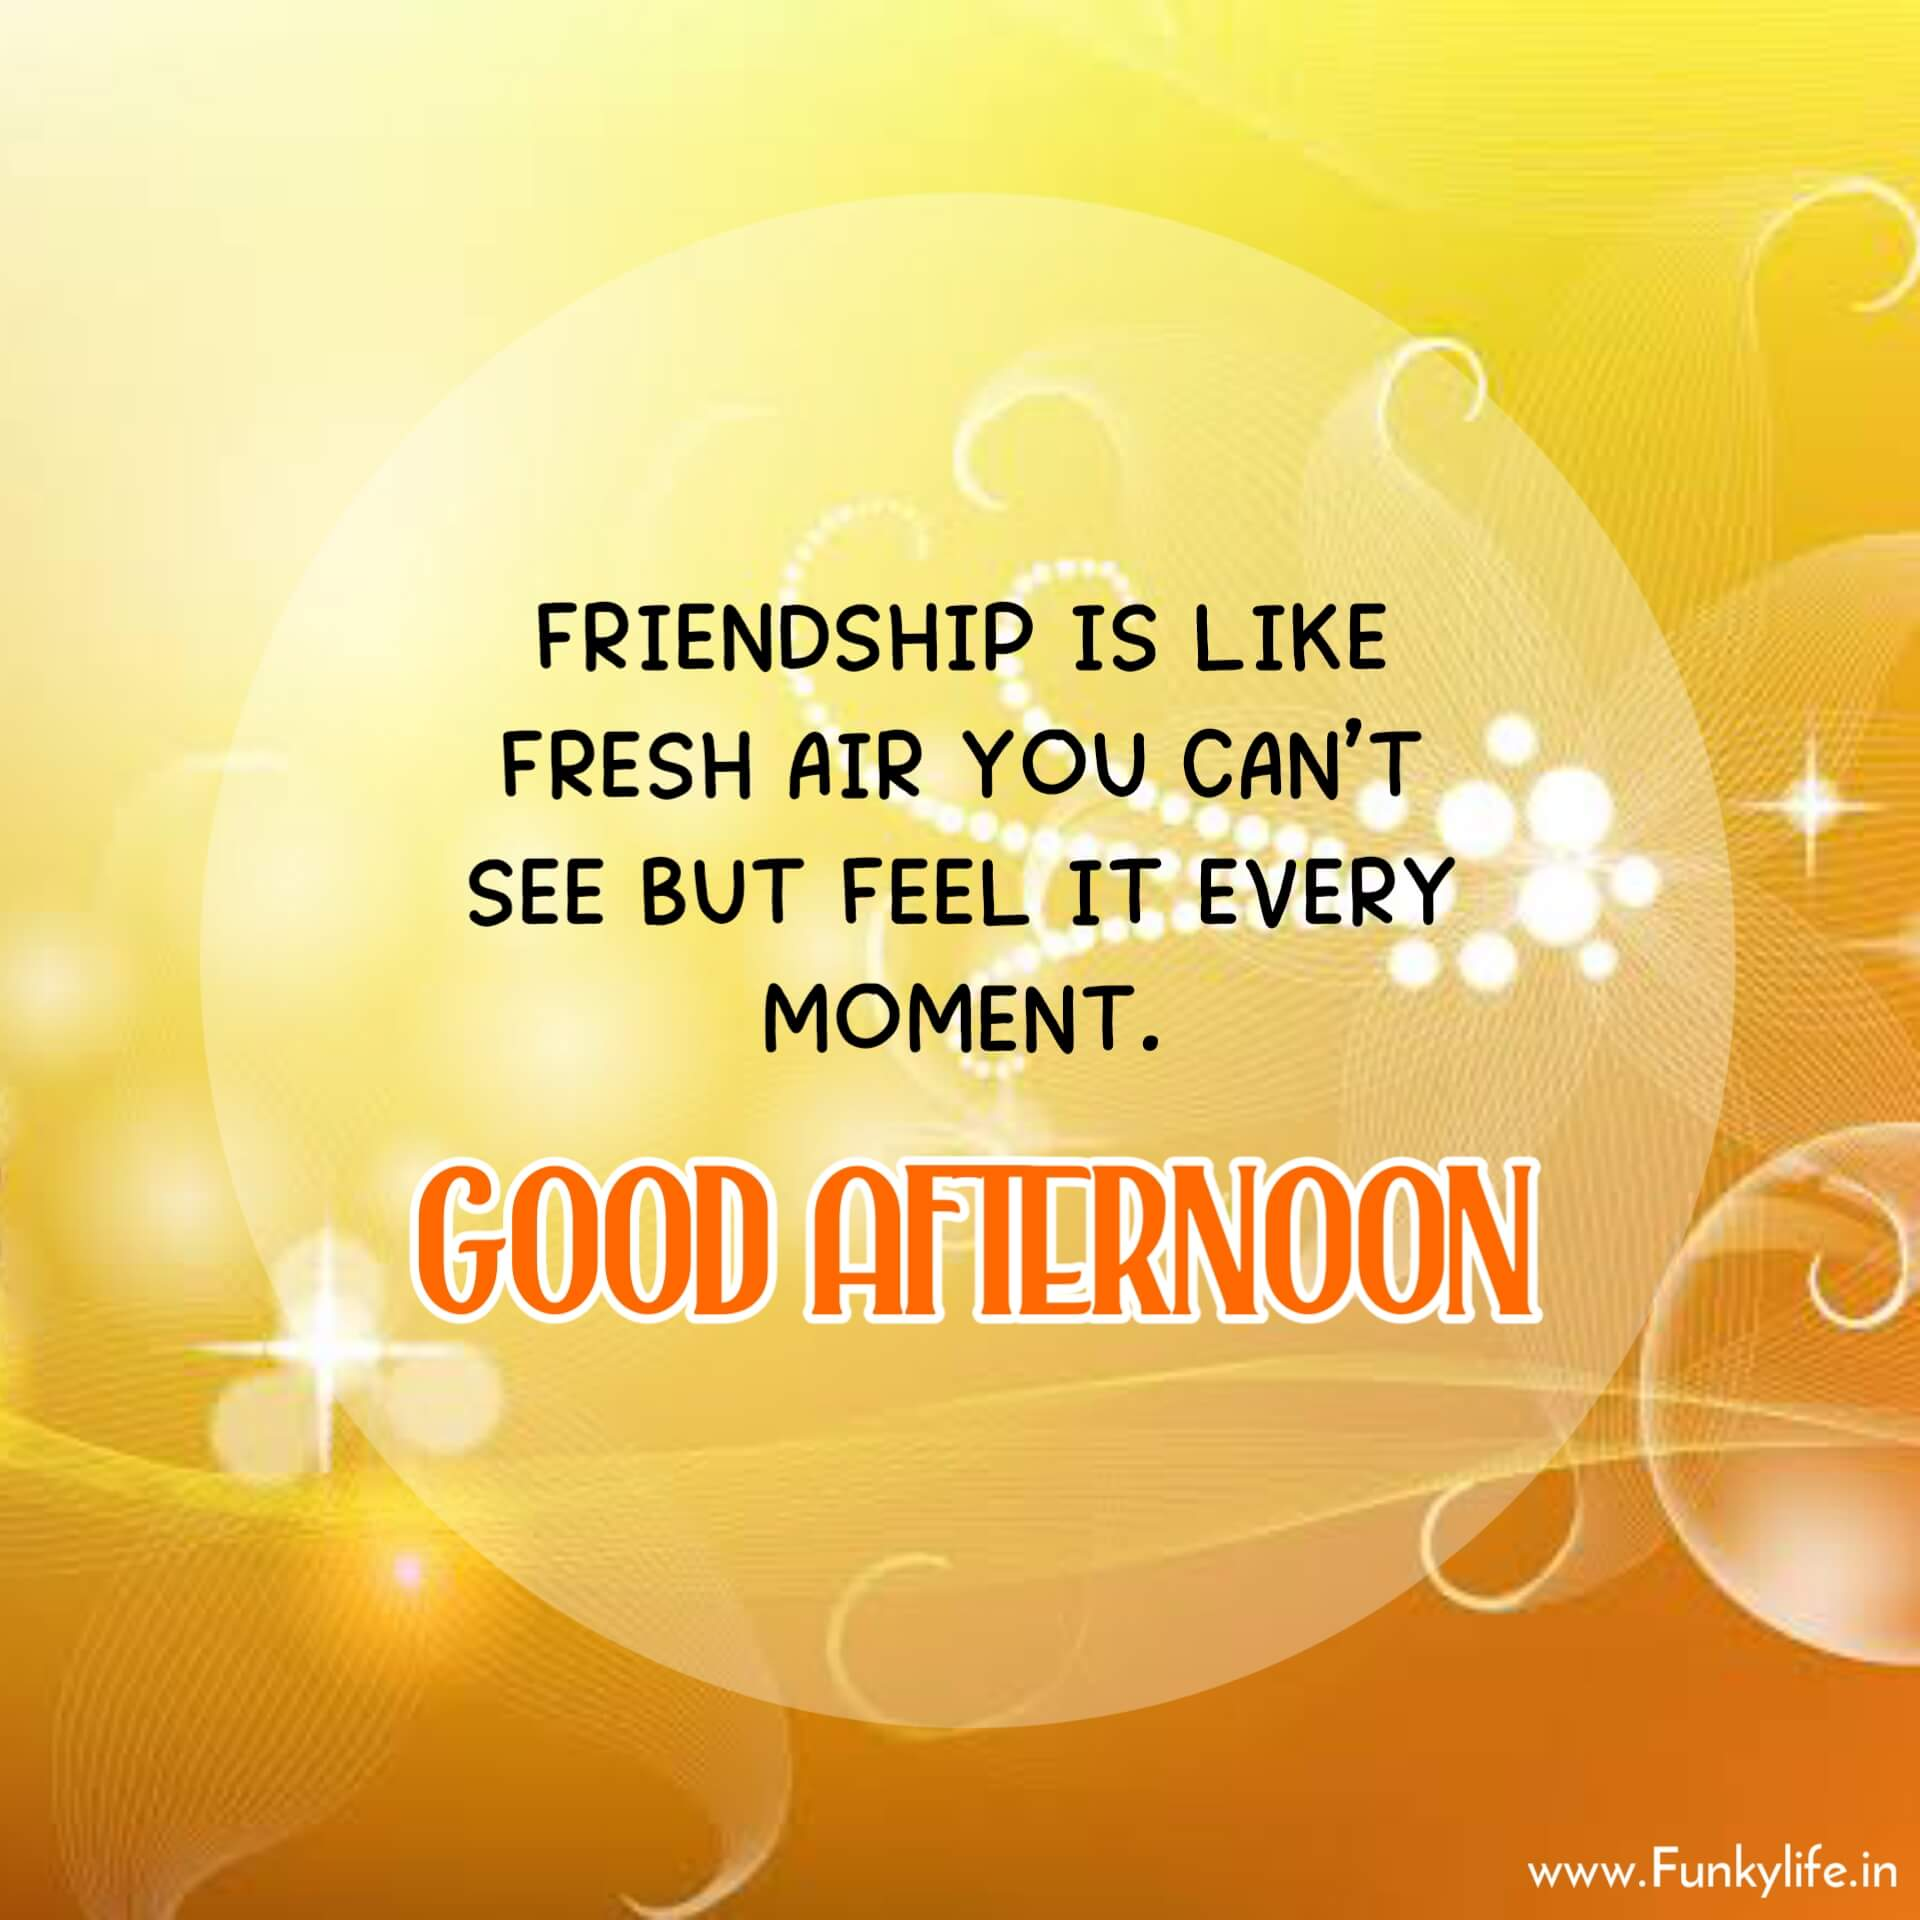 Friendship Good Afternoon Images with Quotes